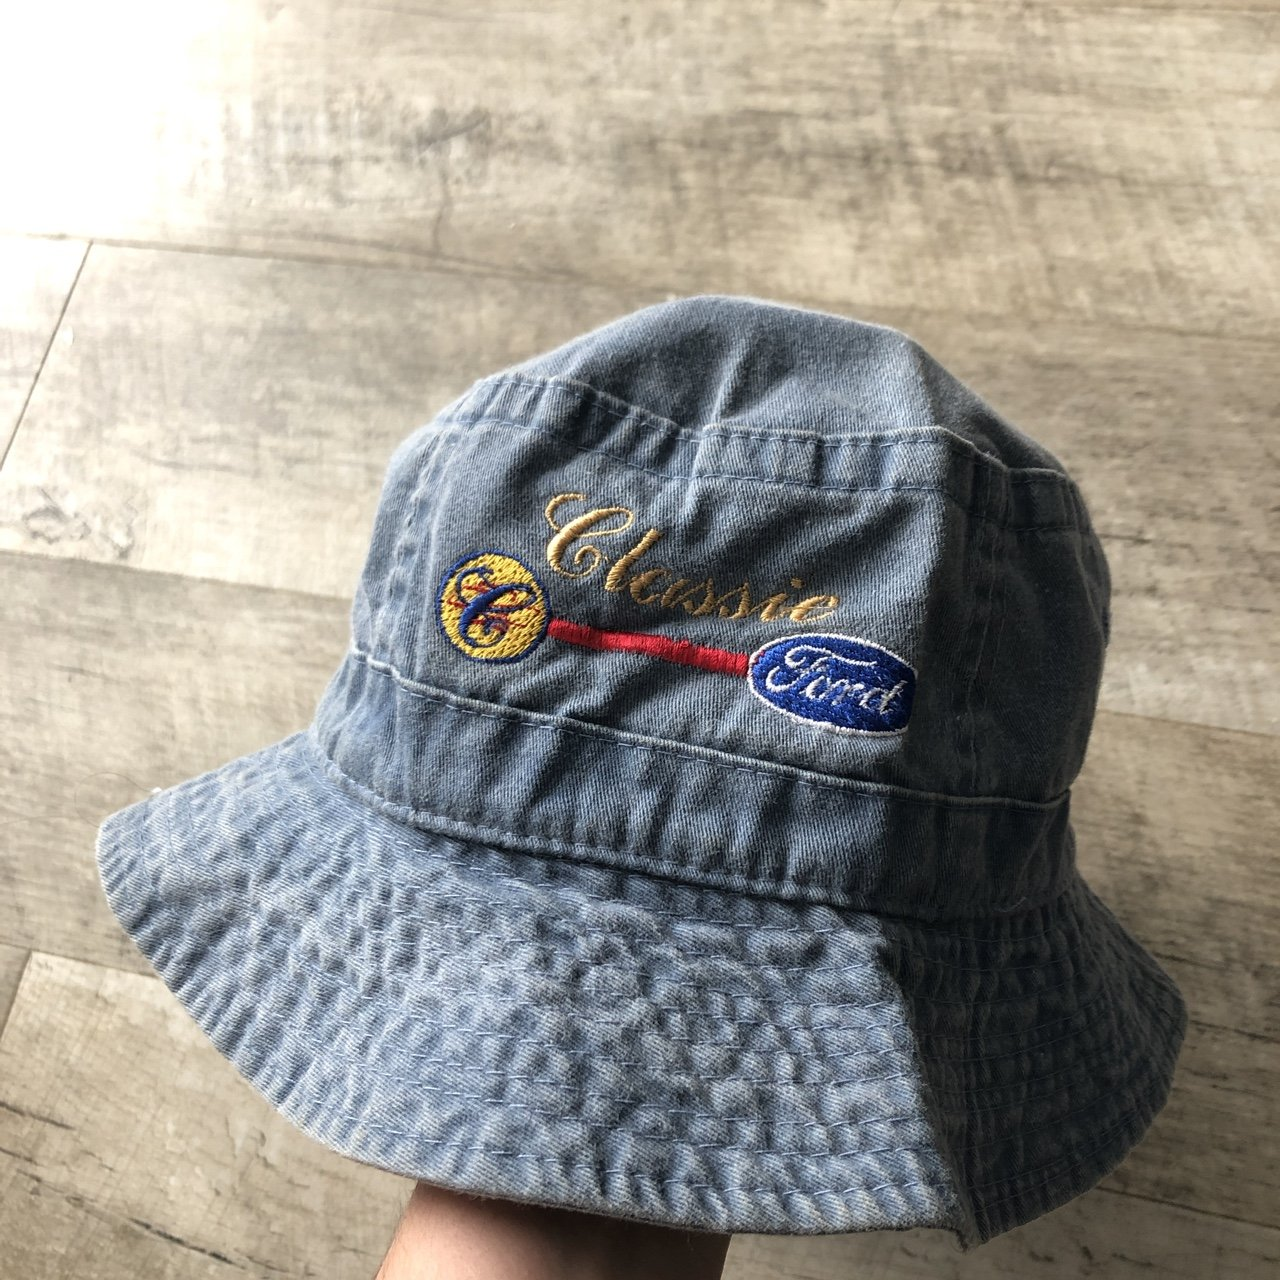 Vintage ford bucket hat 9 10 condition - Depop 72591d37272